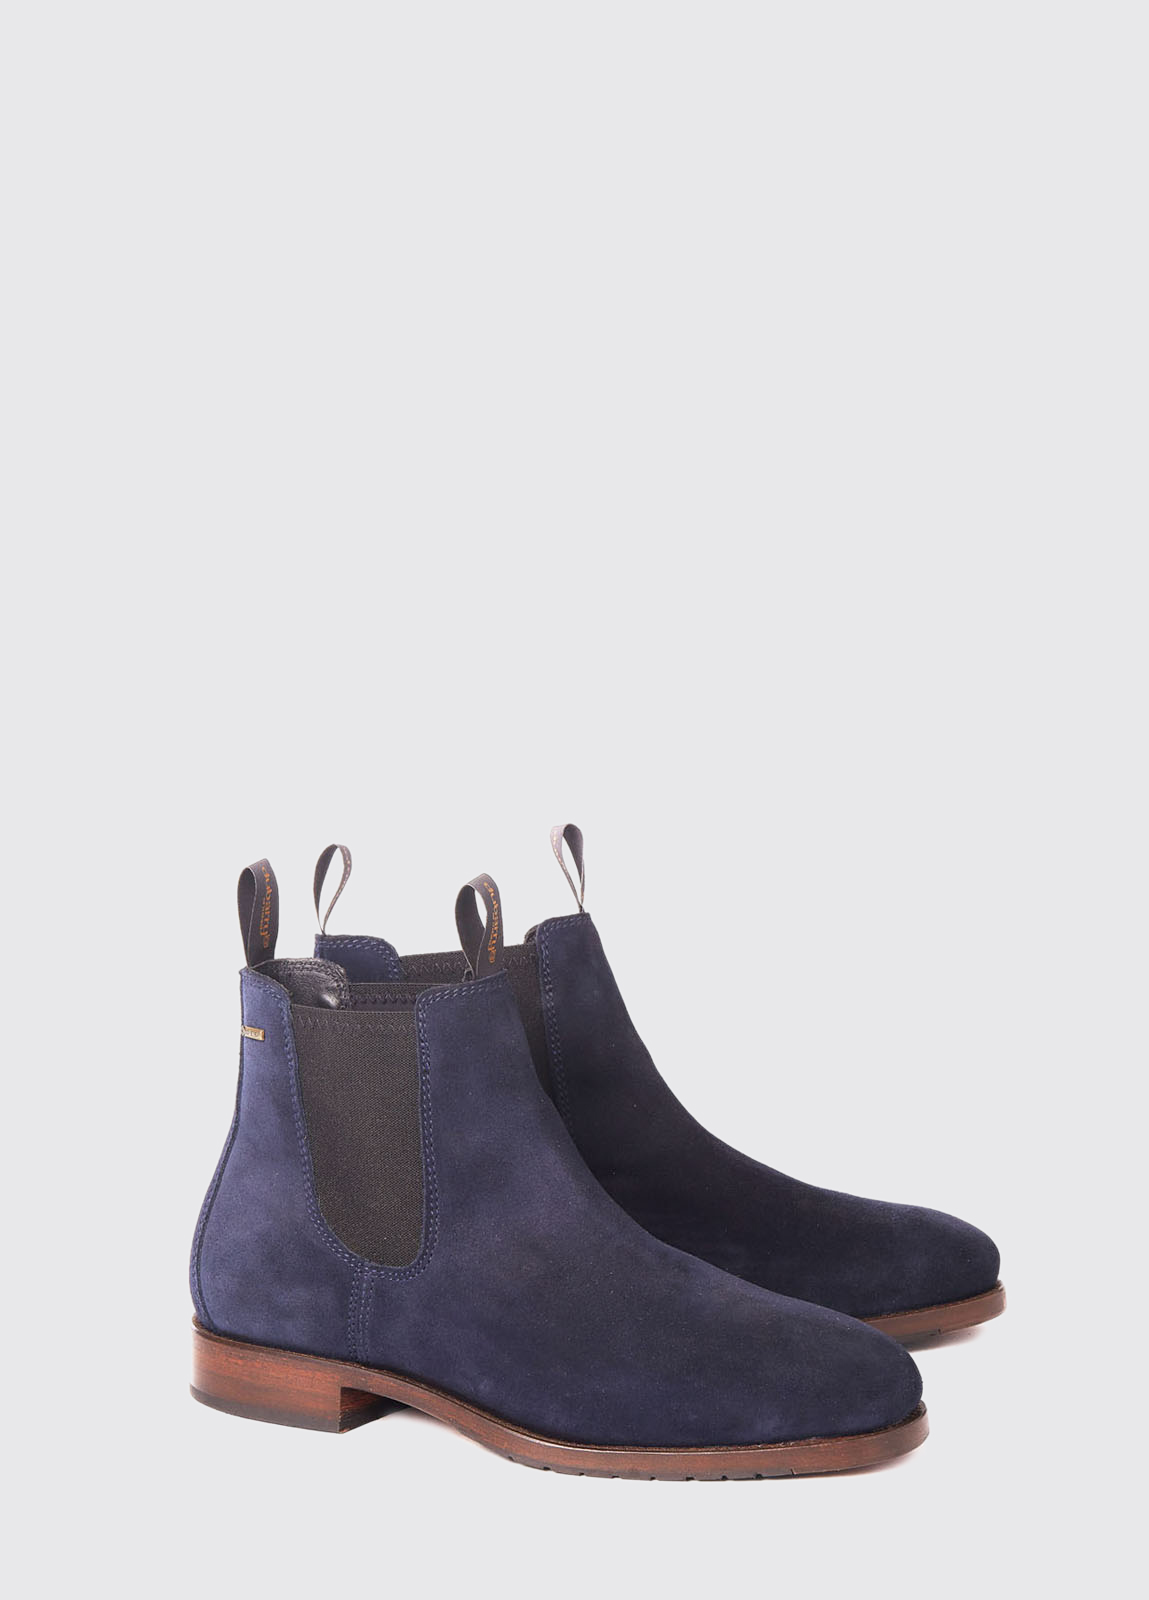 Kerry Leather Soled Boot - French Navy